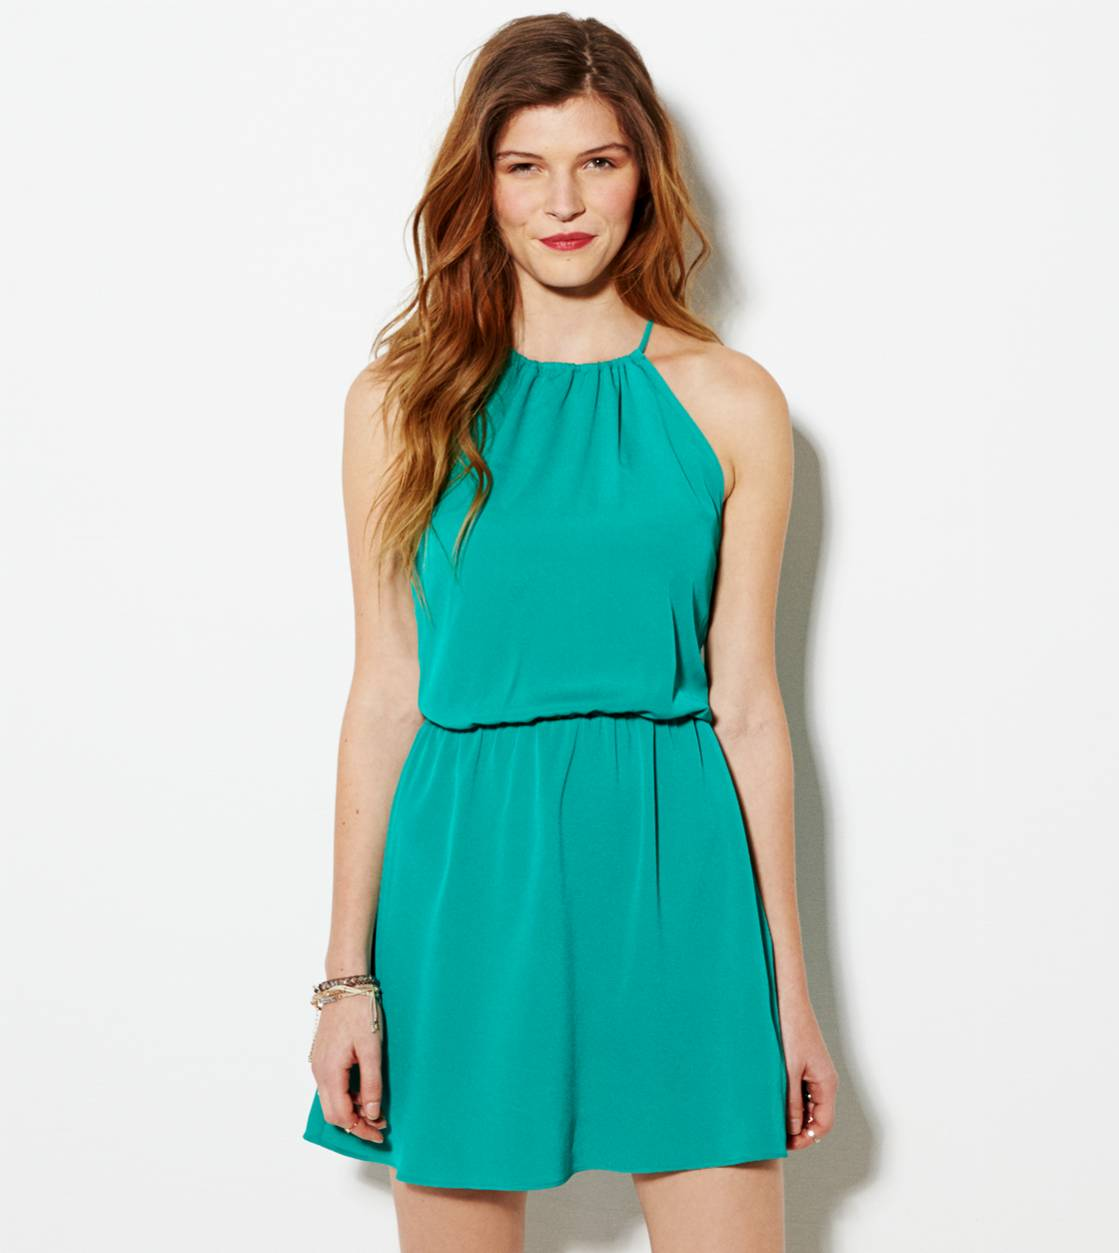 Green AE Halter Party Dress